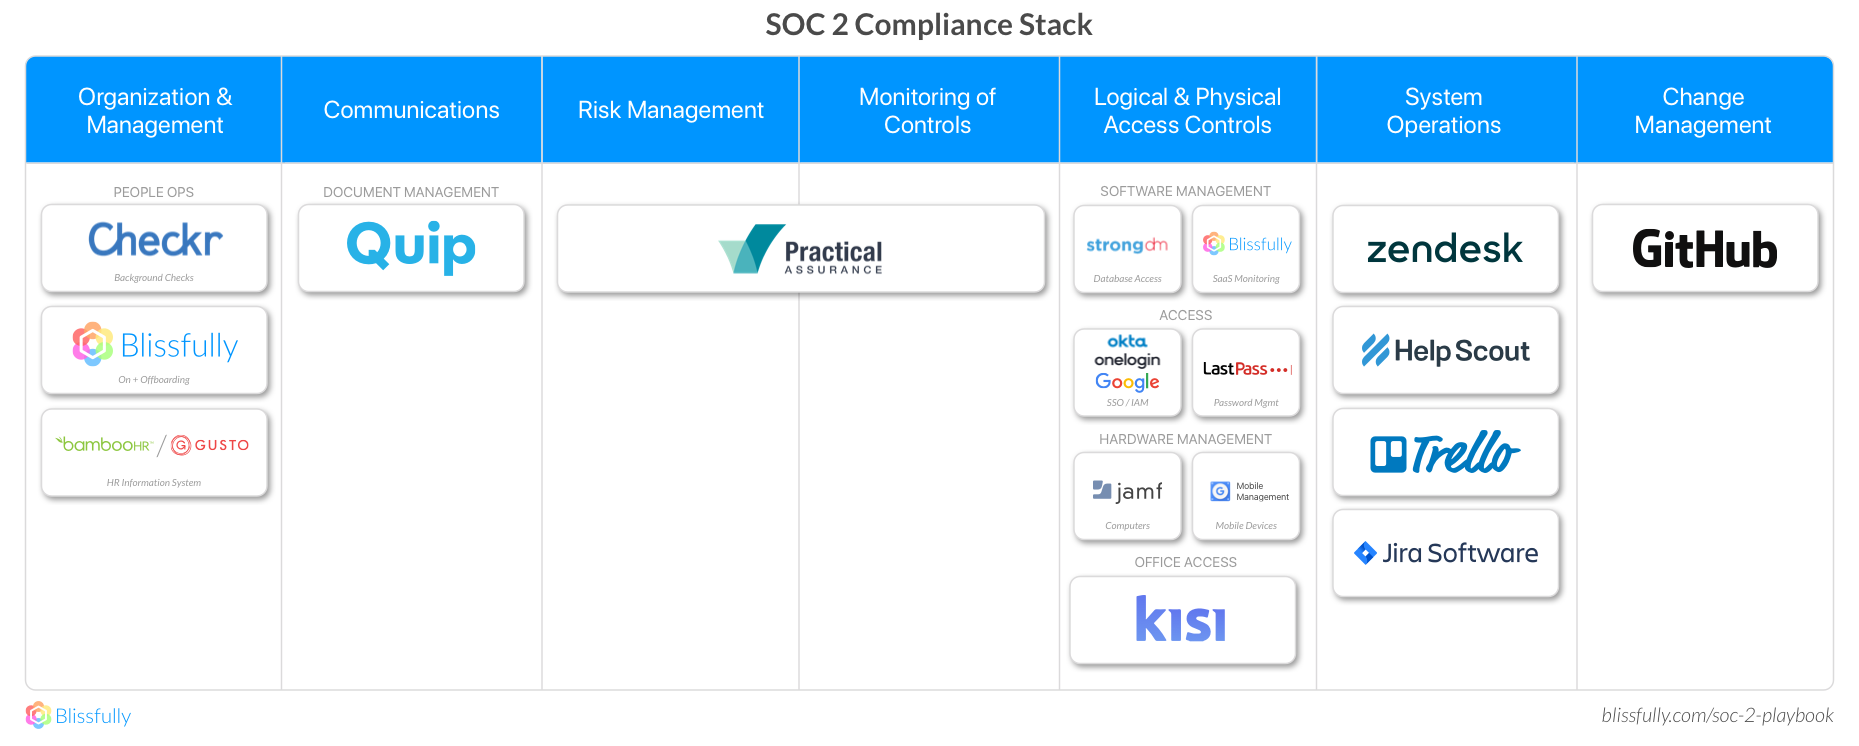 SOC 2 Compliance Stack